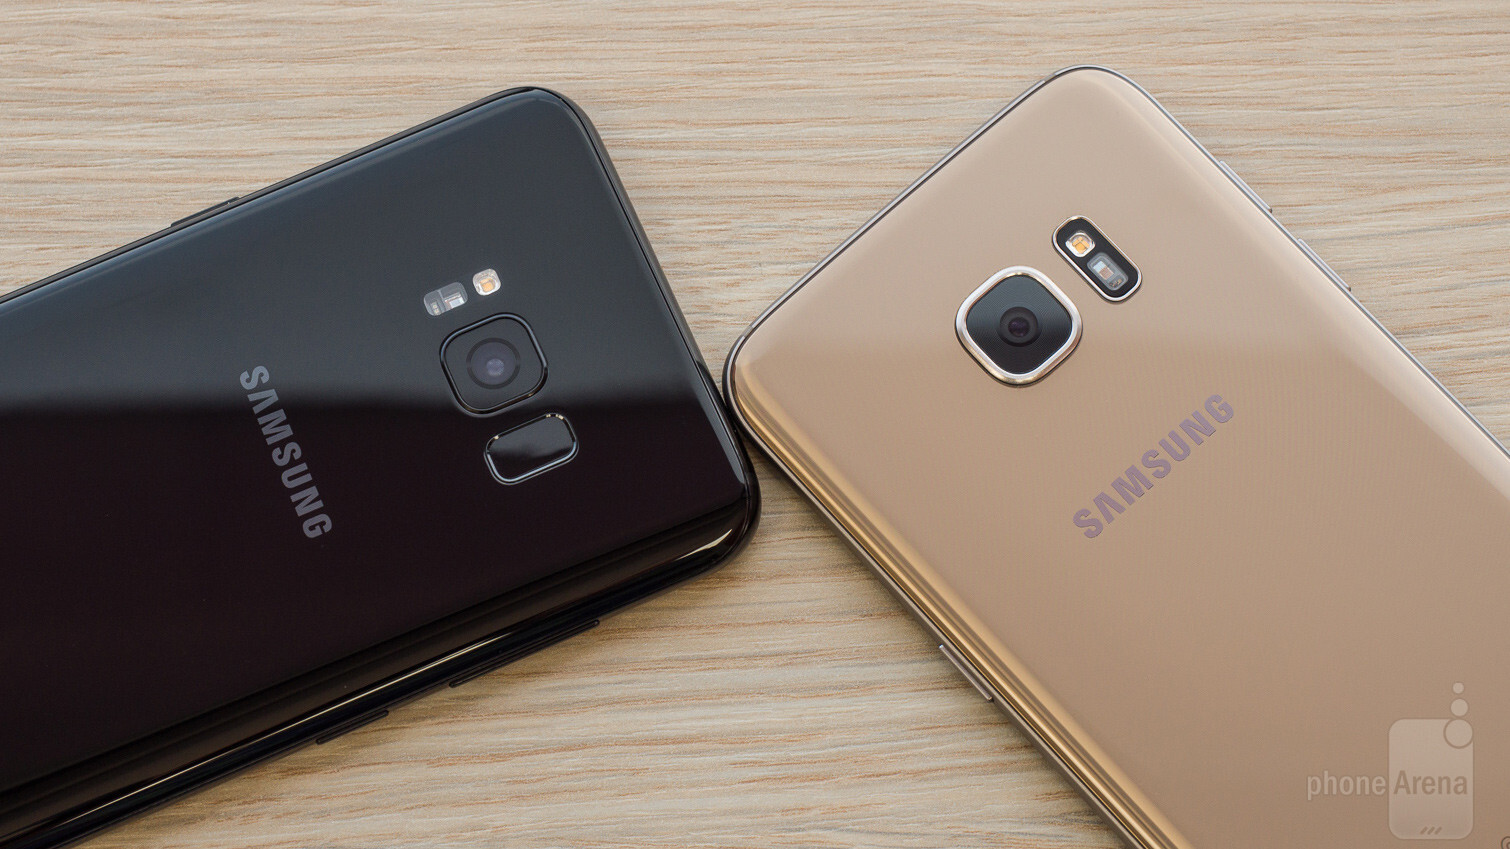 samsung galaxy s8 vs s7 edge call quality battery life and conclusion. Black Bedroom Furniture Sets. Home Design Ideas